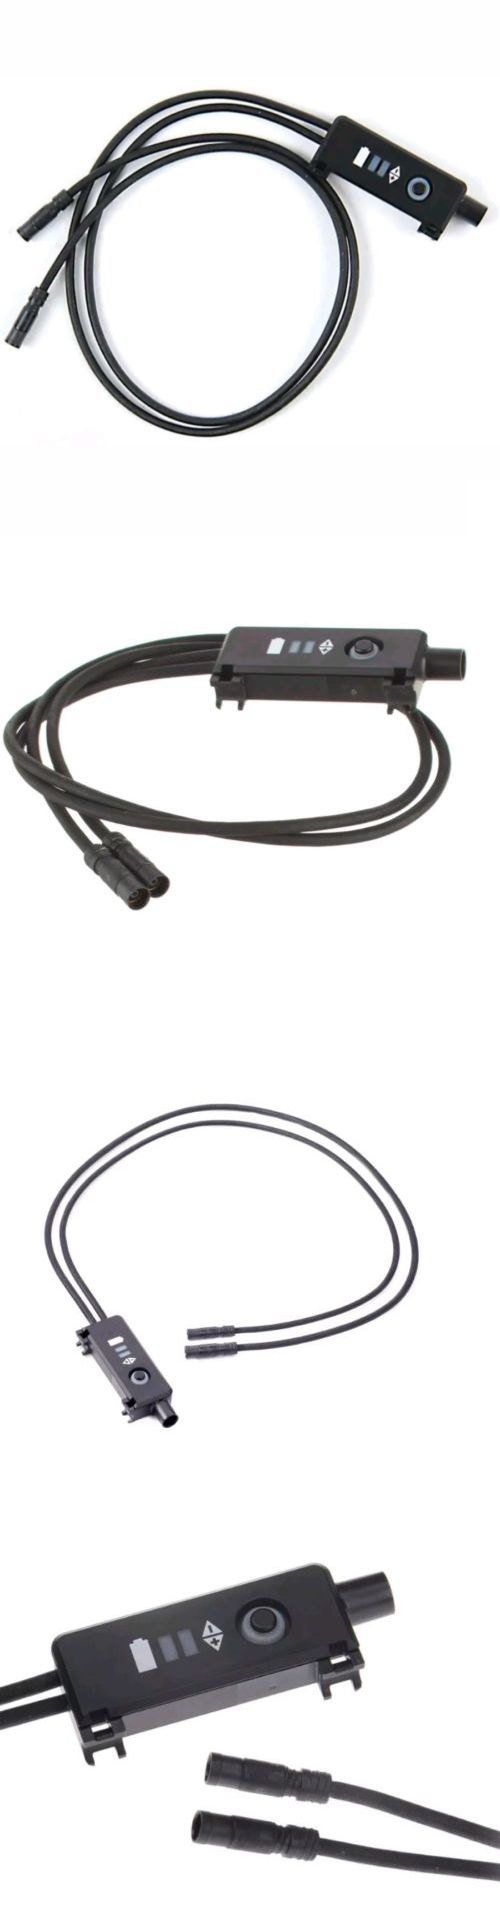 c250adae3e363b23d639a28194bcf0ad cables and housing 42335 shimano e tube di2 front wire harness wire harness diagram at gsmx.co